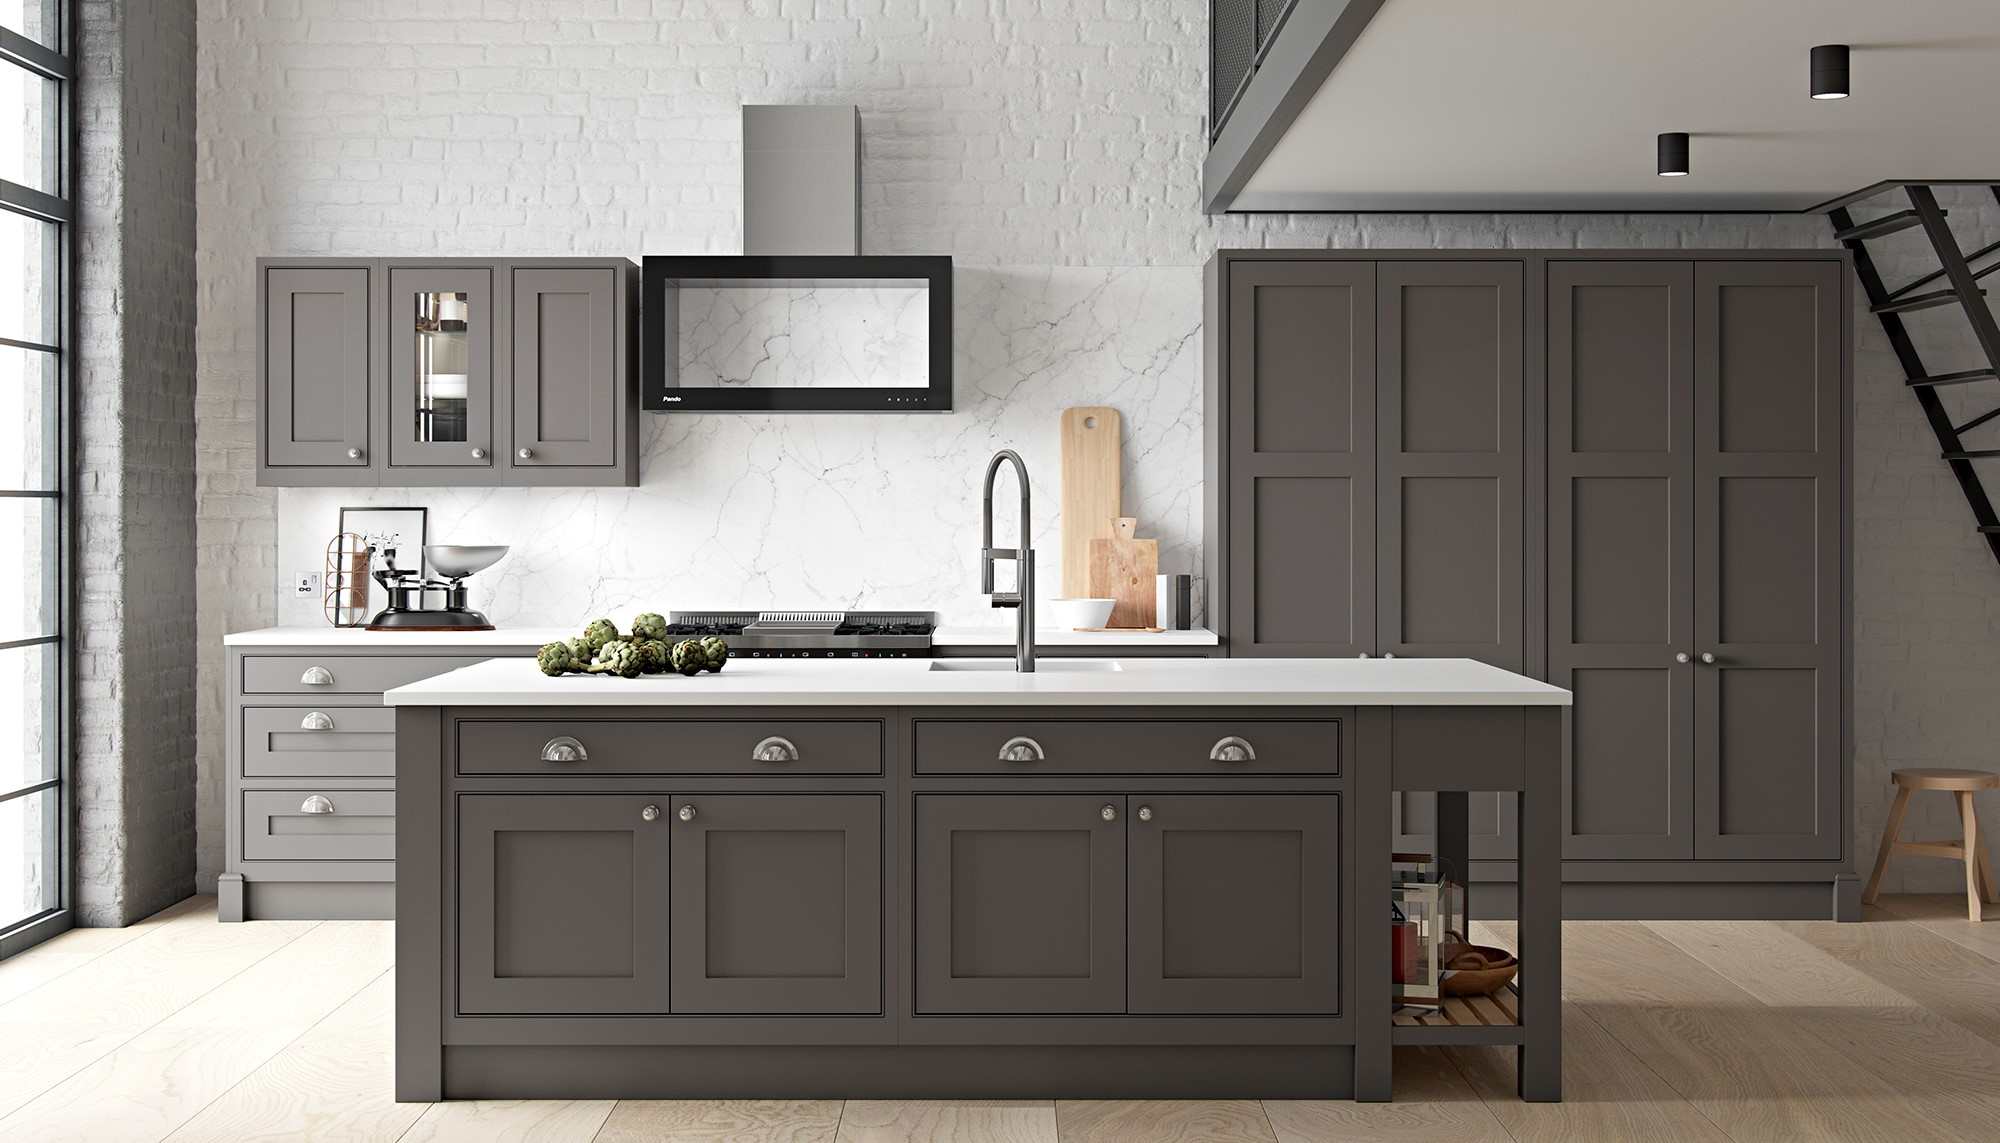 Mereway Kitchens launches new Signature Range